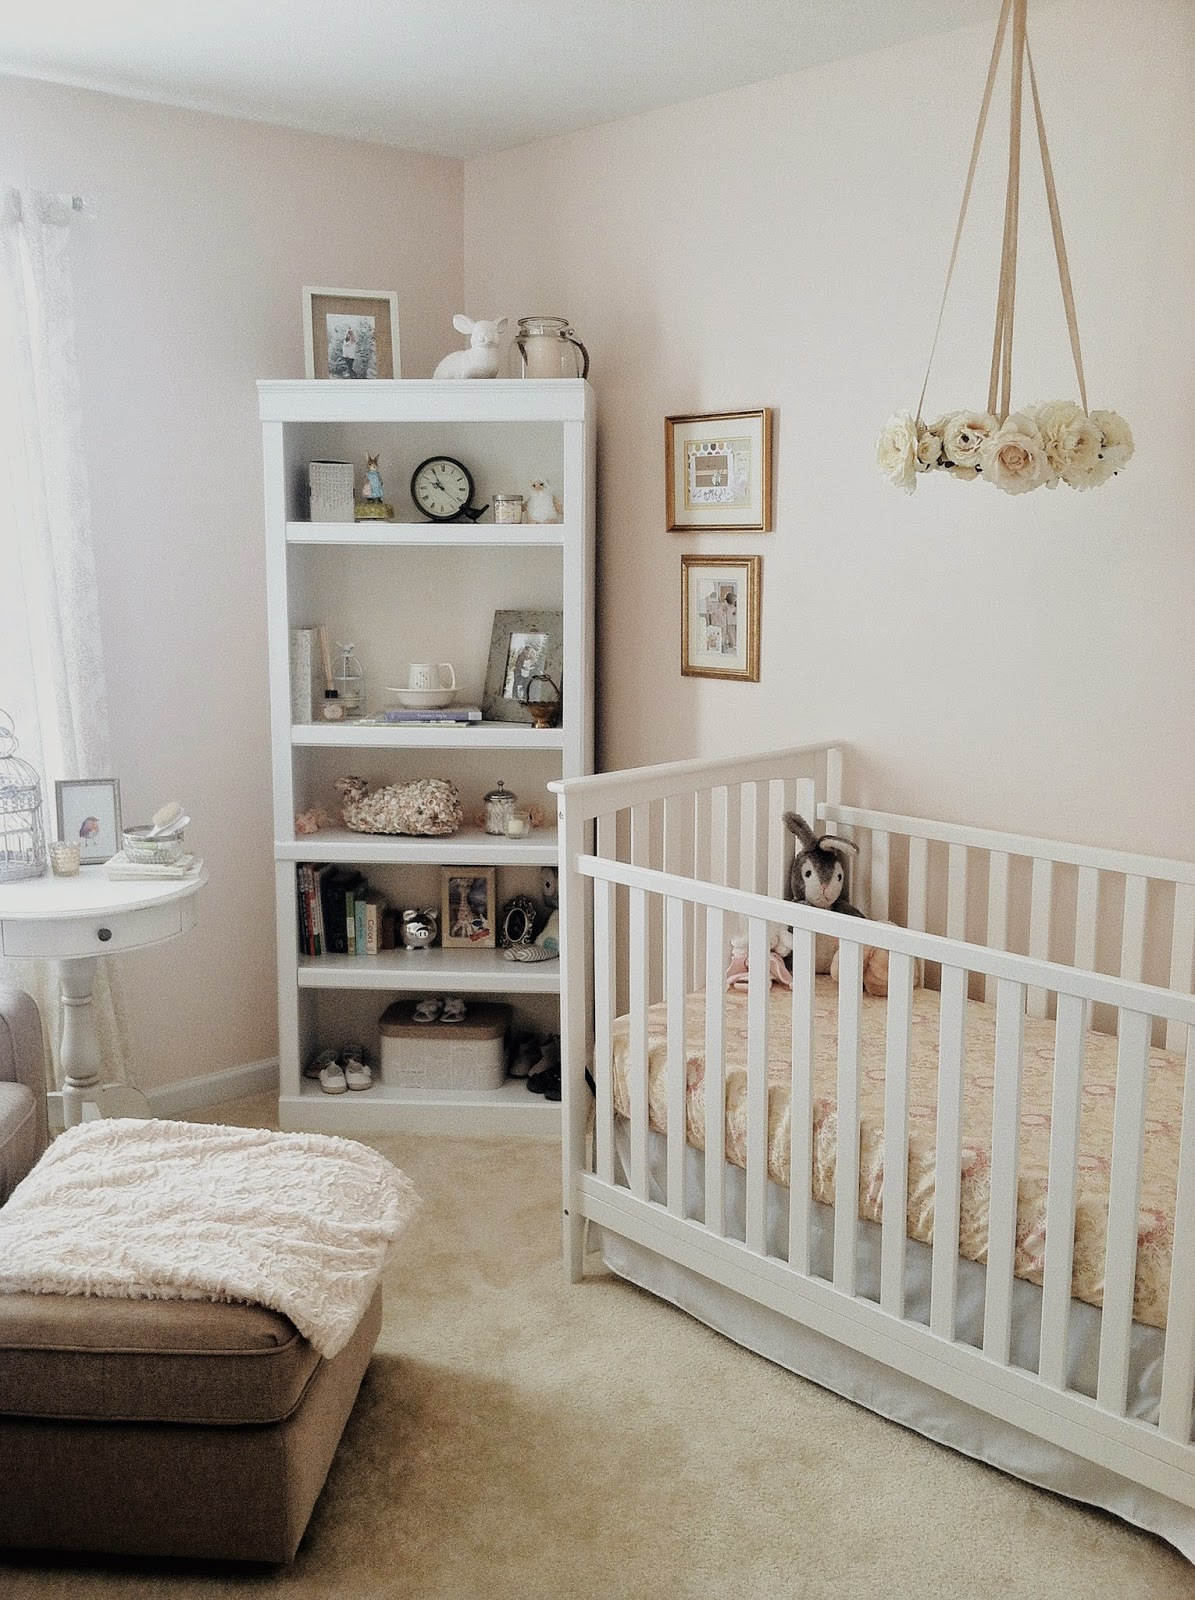 Rosyrilli.com nursery for Miss Evelyn Rose!